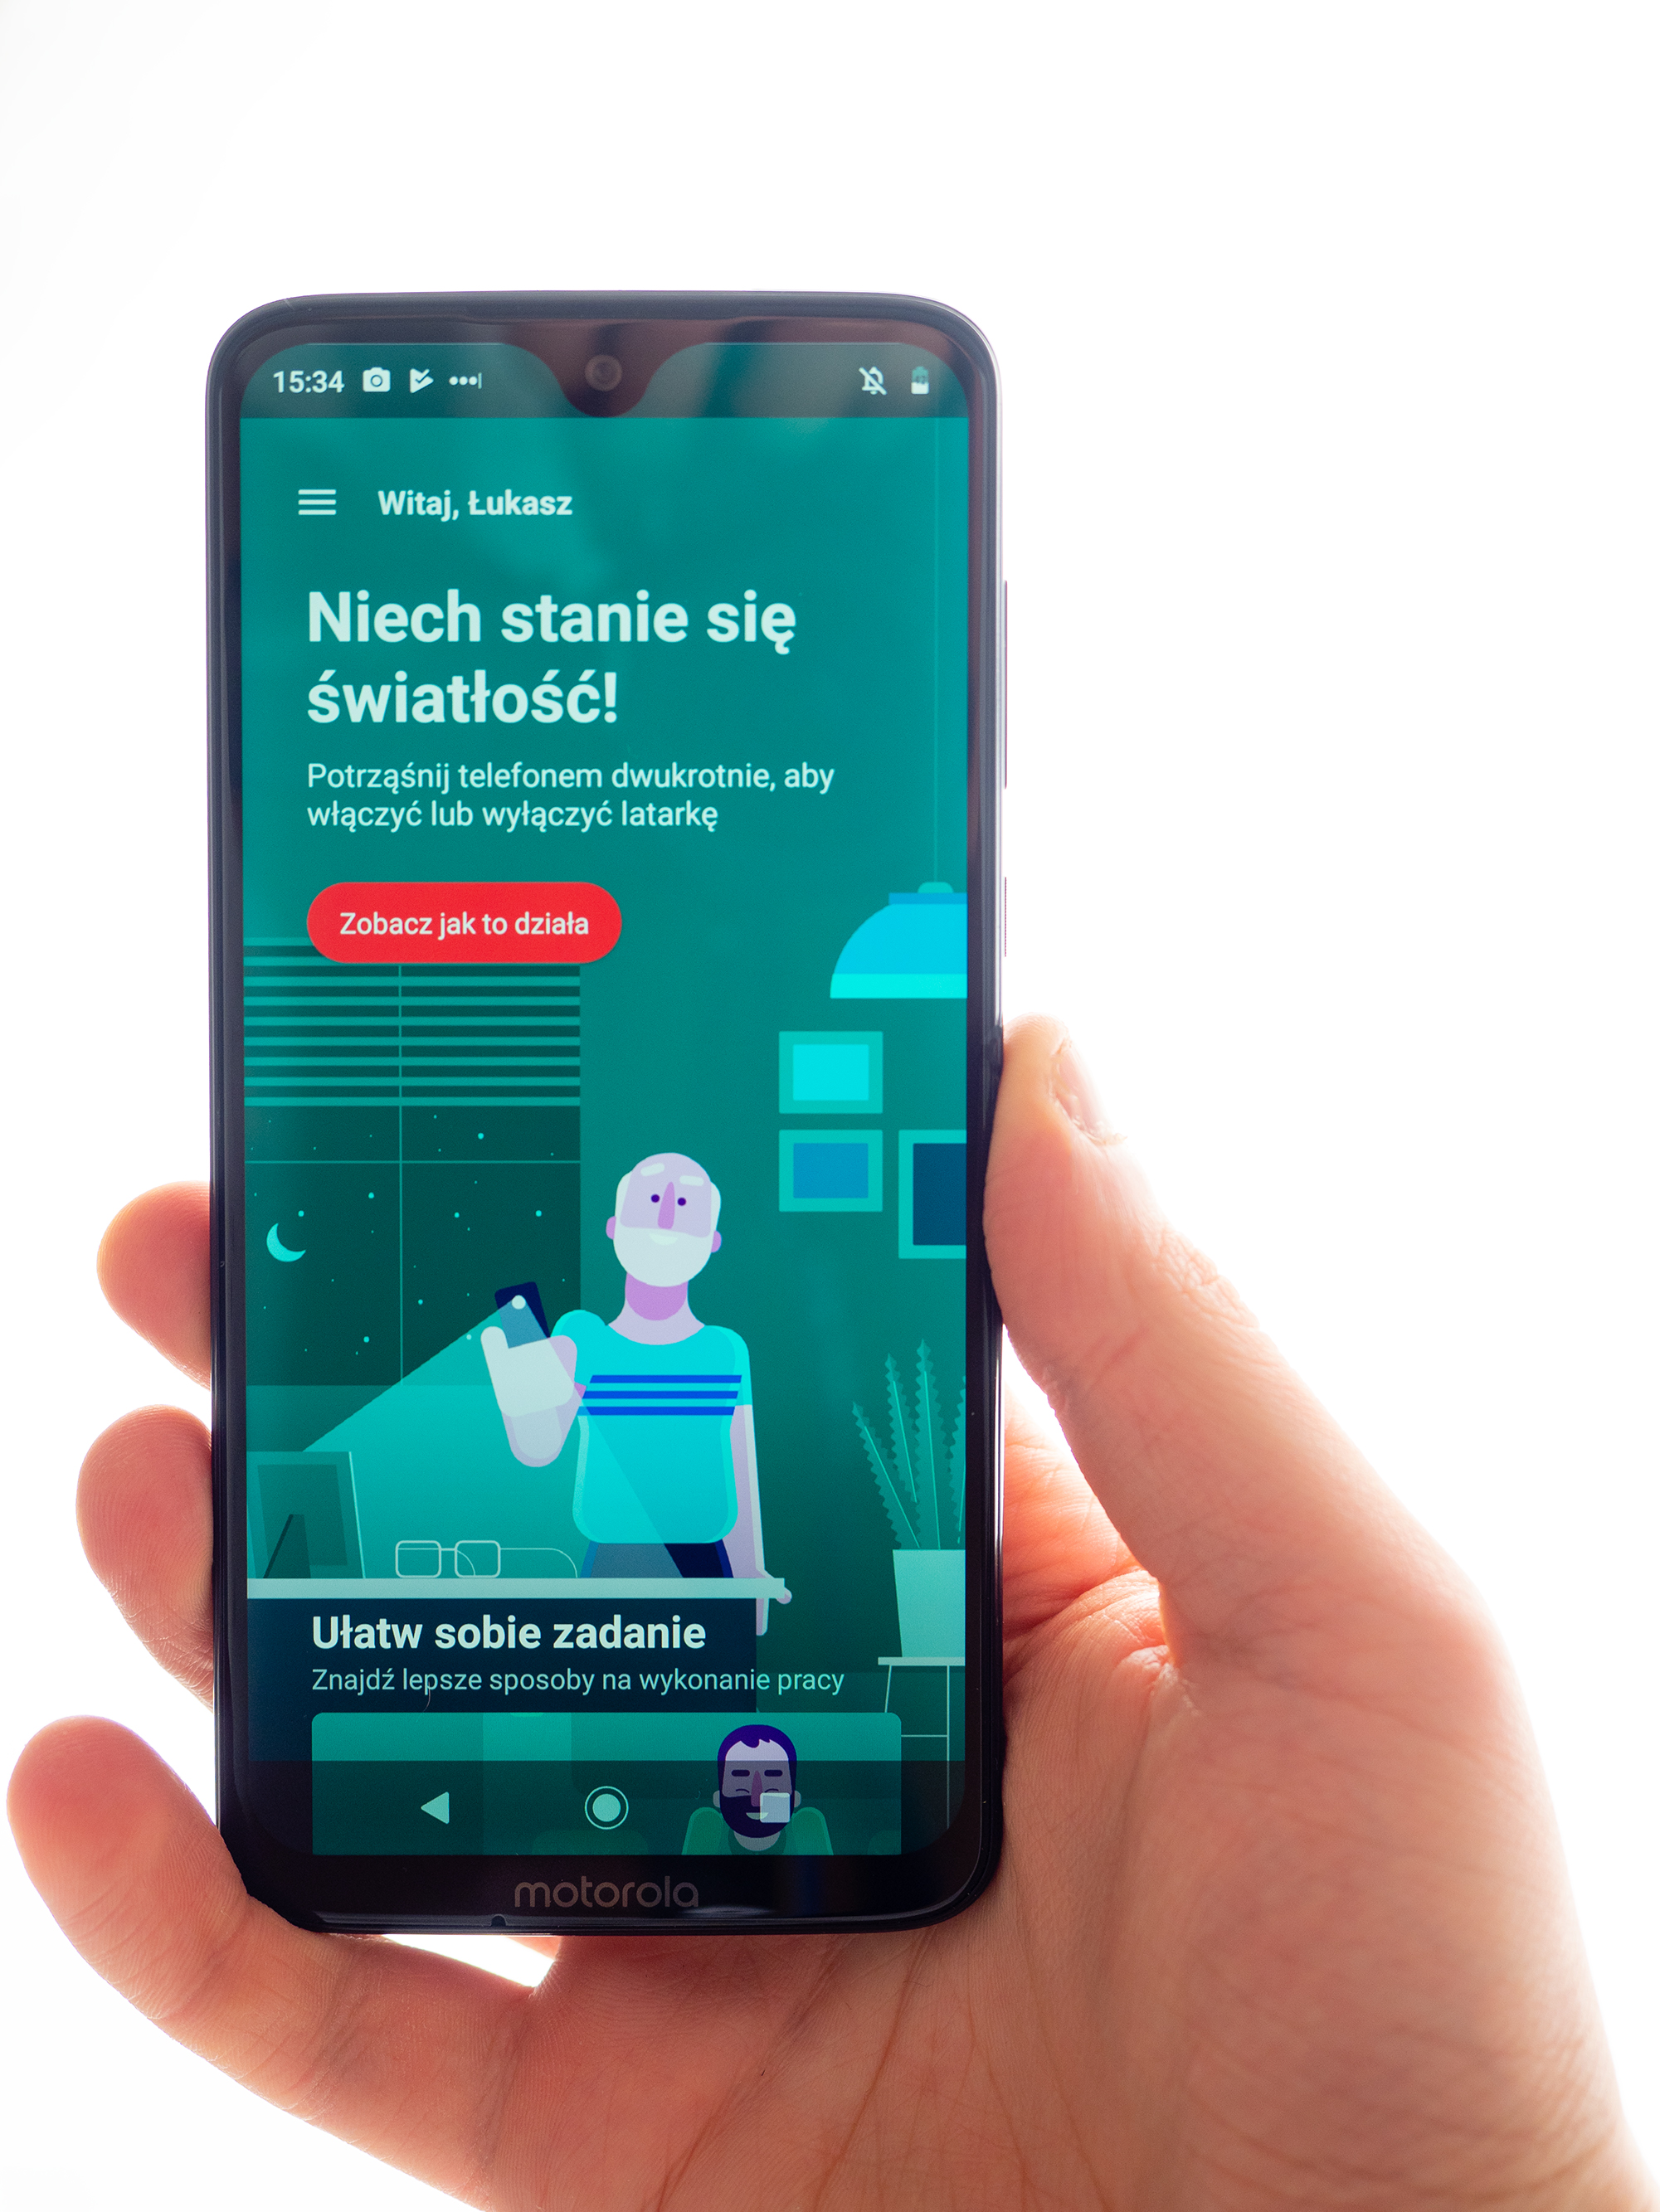 Moto G7 and Moto G7 Plus - review